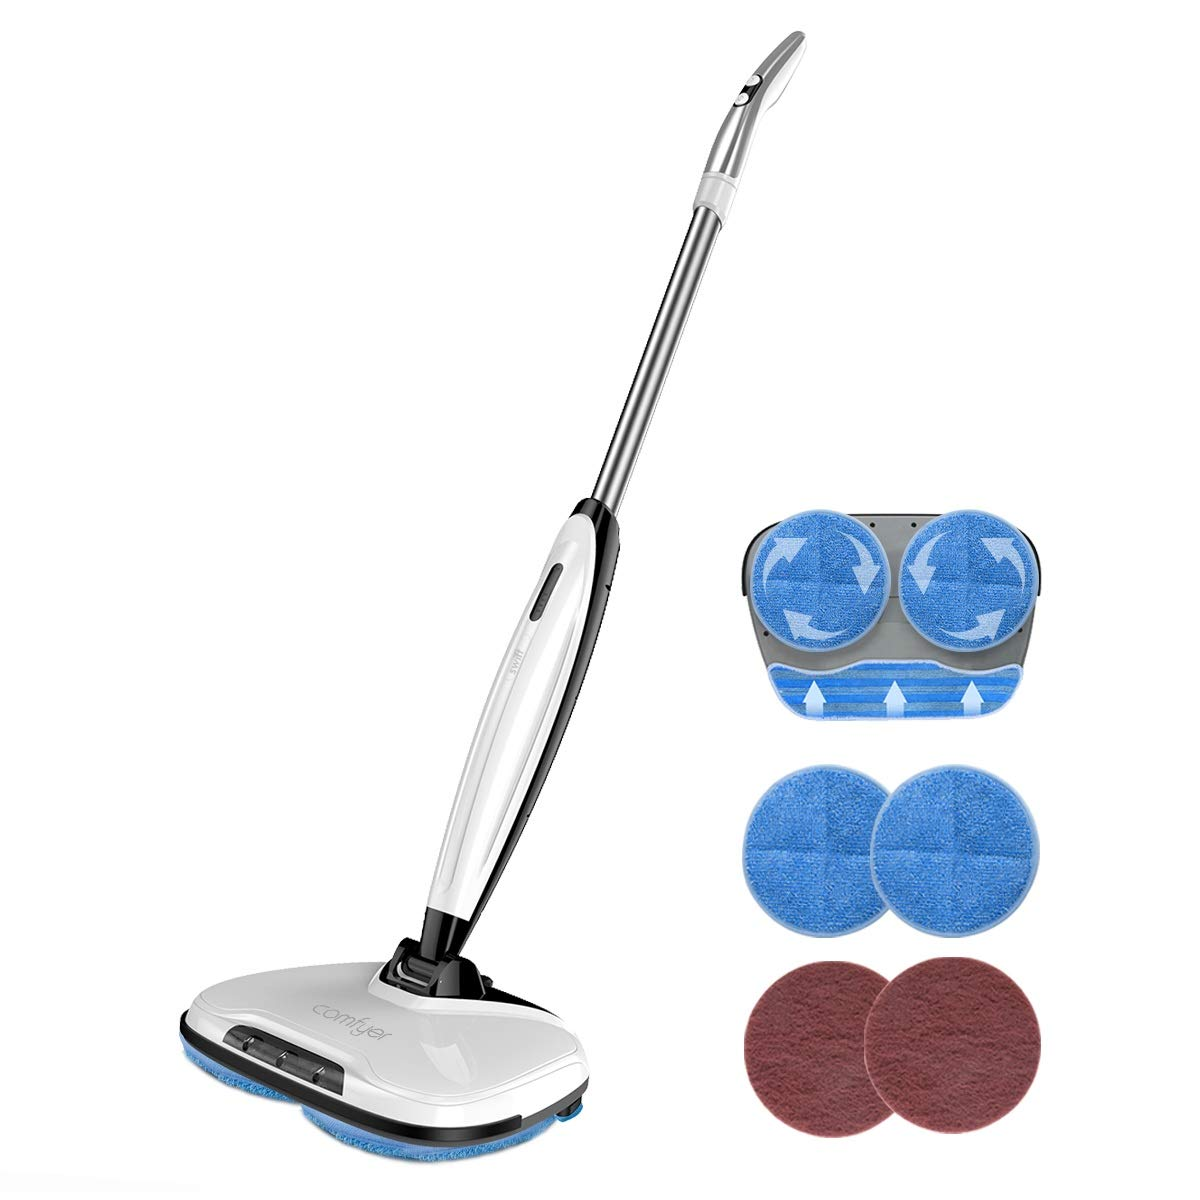 Comfyer Swift Cordless Electric Spin Mop, Floor Cleaner Mop, 2 in 1 Power Scrubber Brush & Polisher with Microfiber Reusable Pads and Water Spray for Hard Wood, Tile, Vinyl, Marble, Laminate Floor by Comfyer